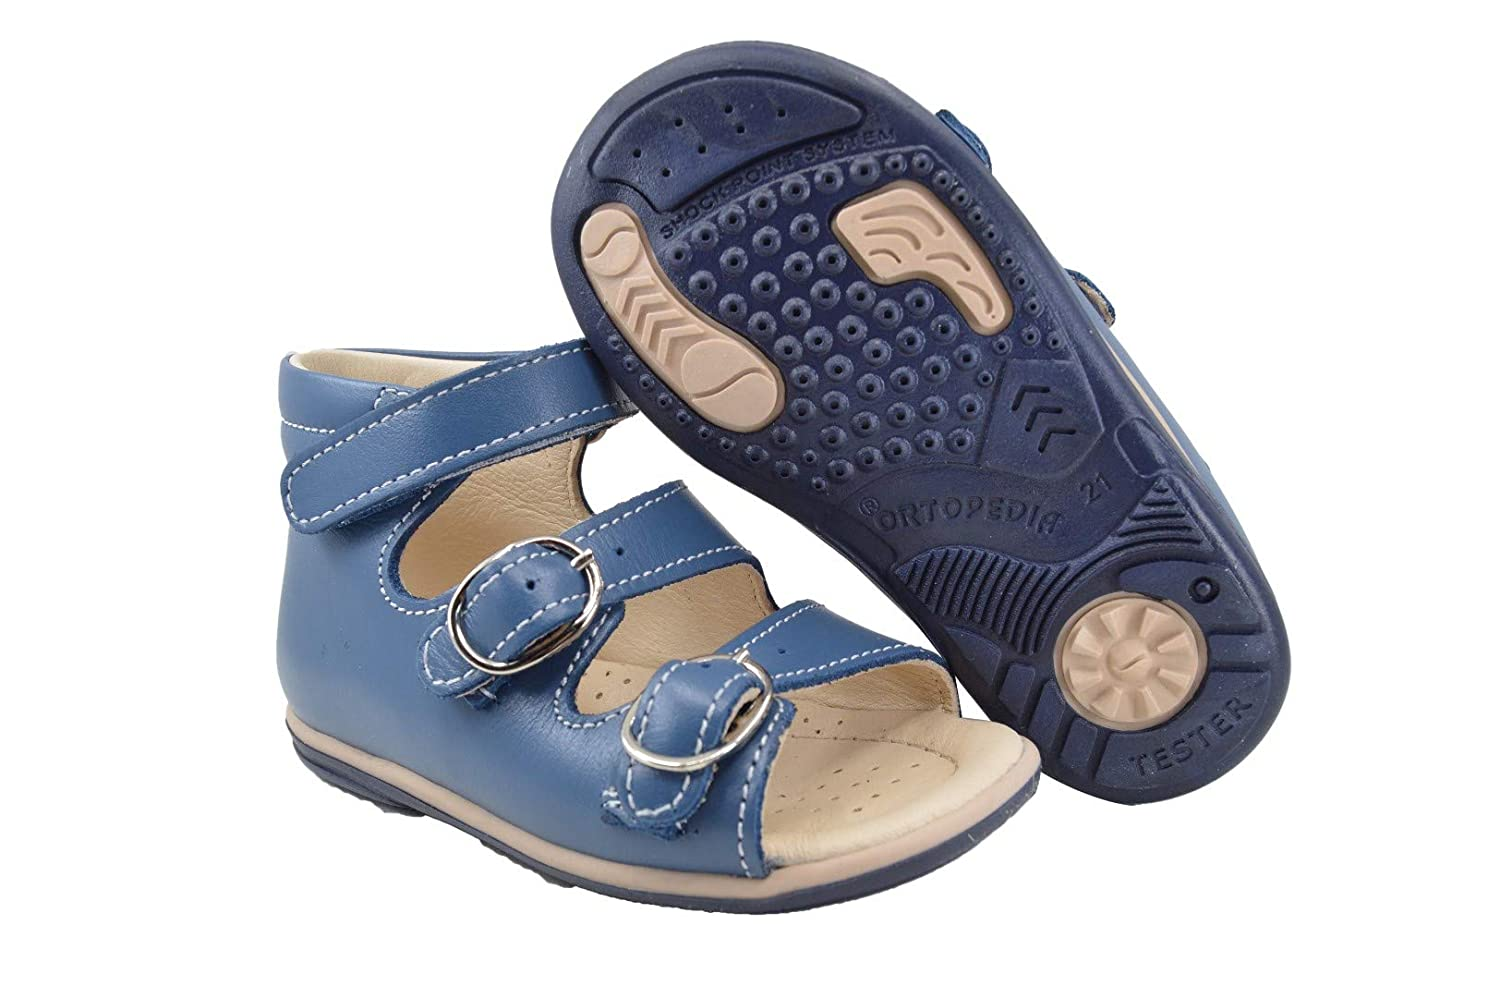 Orthopedic Sandals Boys Girls with Ankle Support